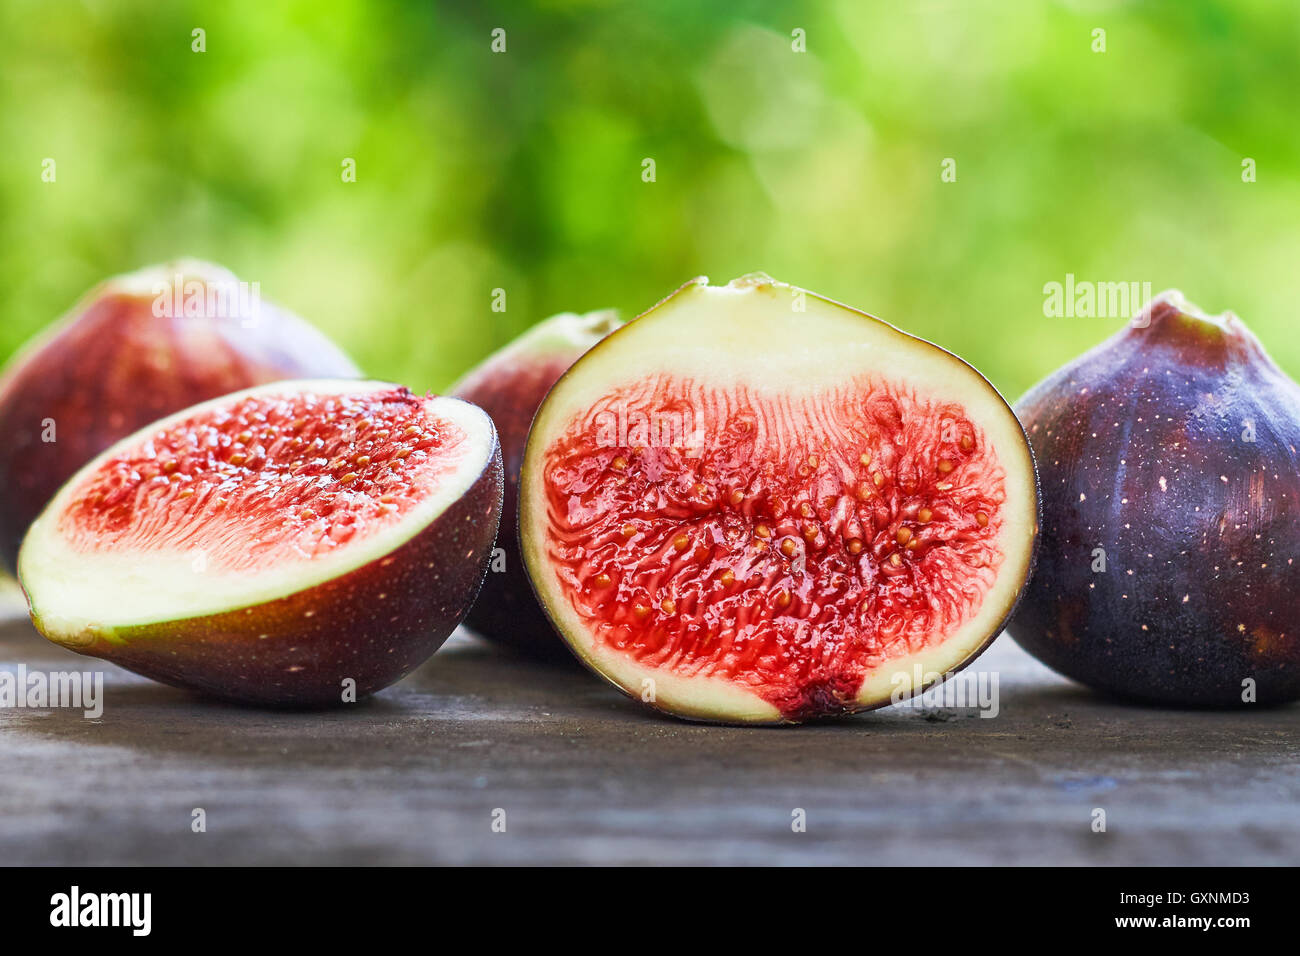 Fresh ripe black figs on rustic grey wooden table with green blurry background. Copy space - Stock Image